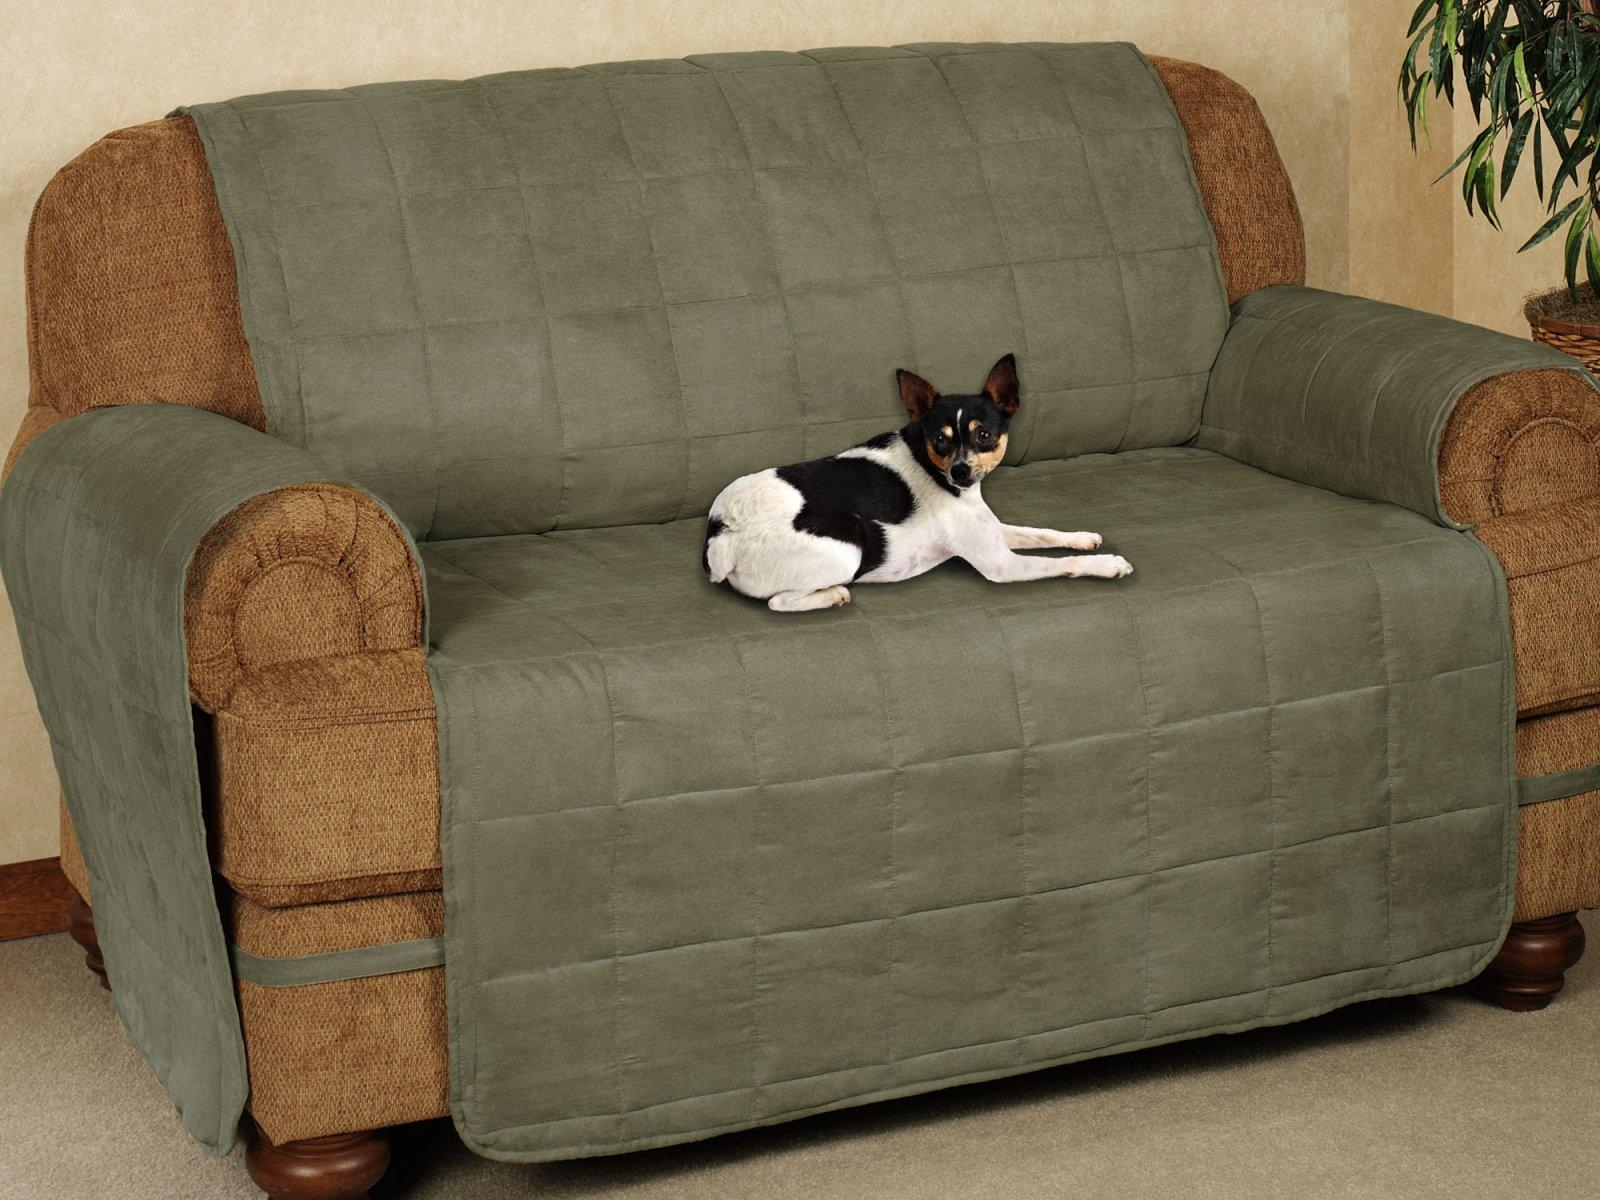 ▻ Sofa : 4 Decoration How To Keep A Slipcover On A Leather Sofa Inside Slipcover For Leather Sofas (View 20 of 20)